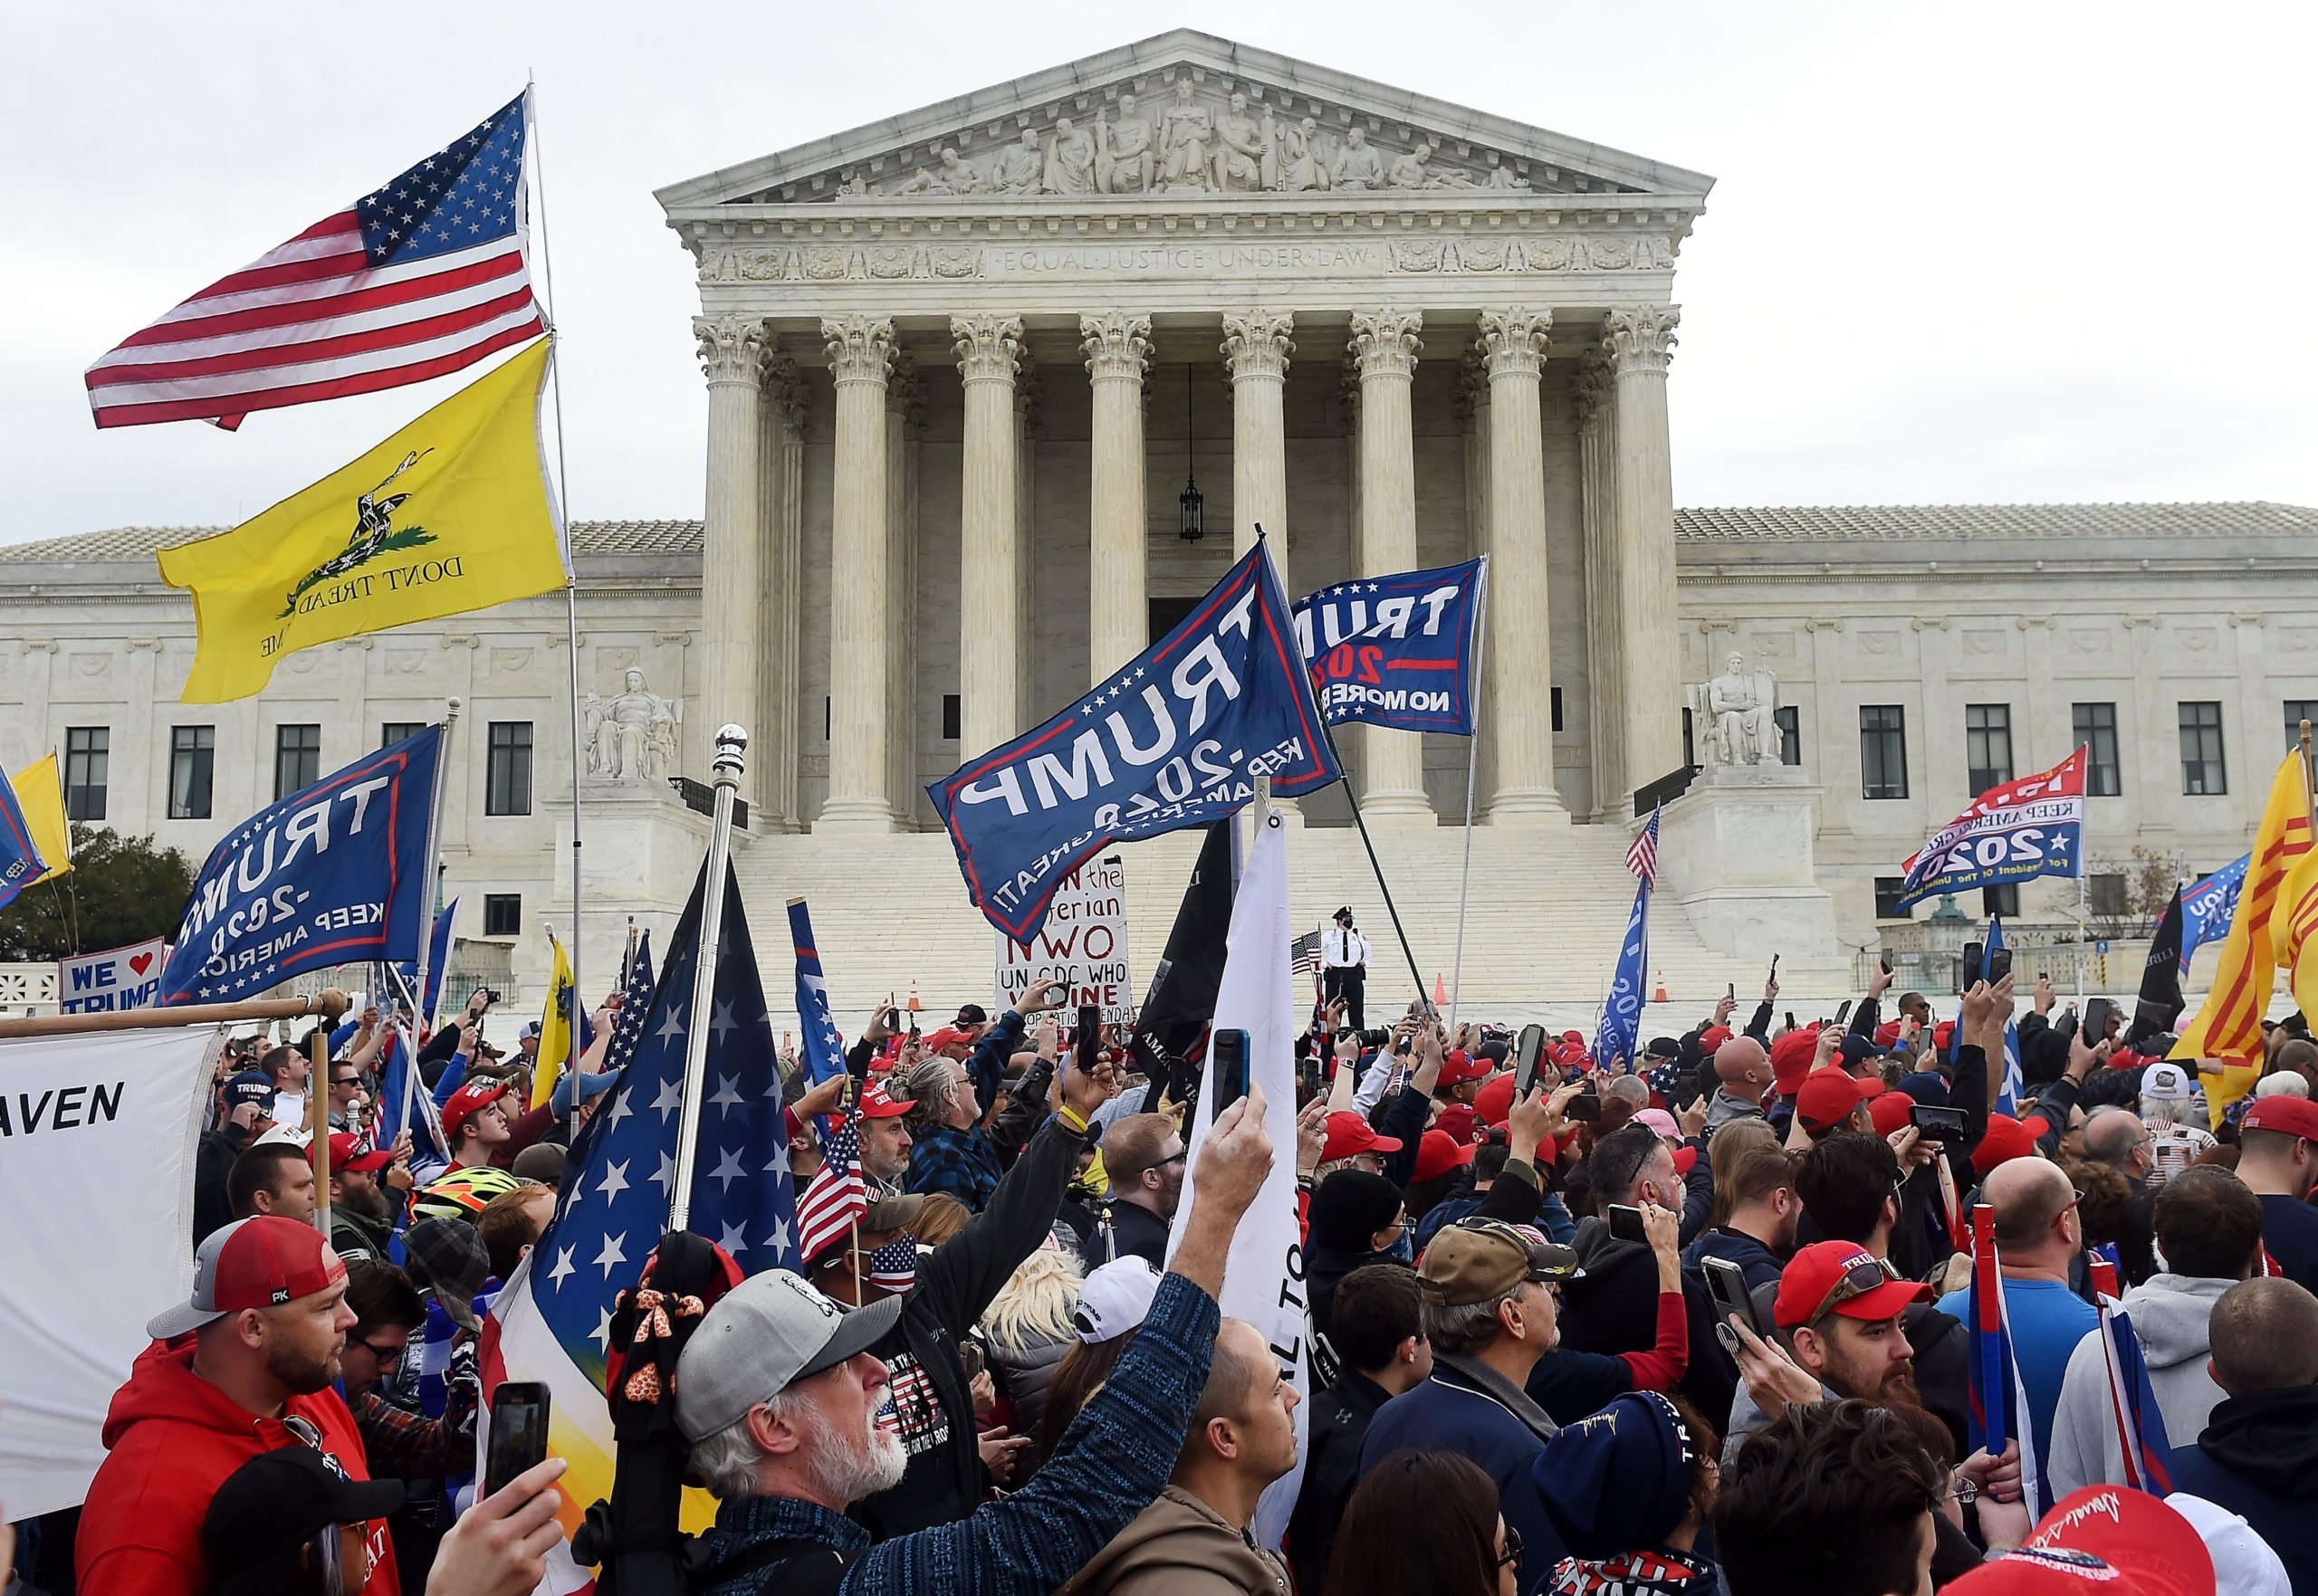 Supporters of US President Donald Trump participate in the Million MAGA March to protest the outcome of the 2020 presidential election, in front of the US Supreme Court on December 12, 2020 in Washington, DC. (Photo by Olivier DOULIERY / AFP) (Photo by OLIVIER DOULIERY/AFP via Getty Images)